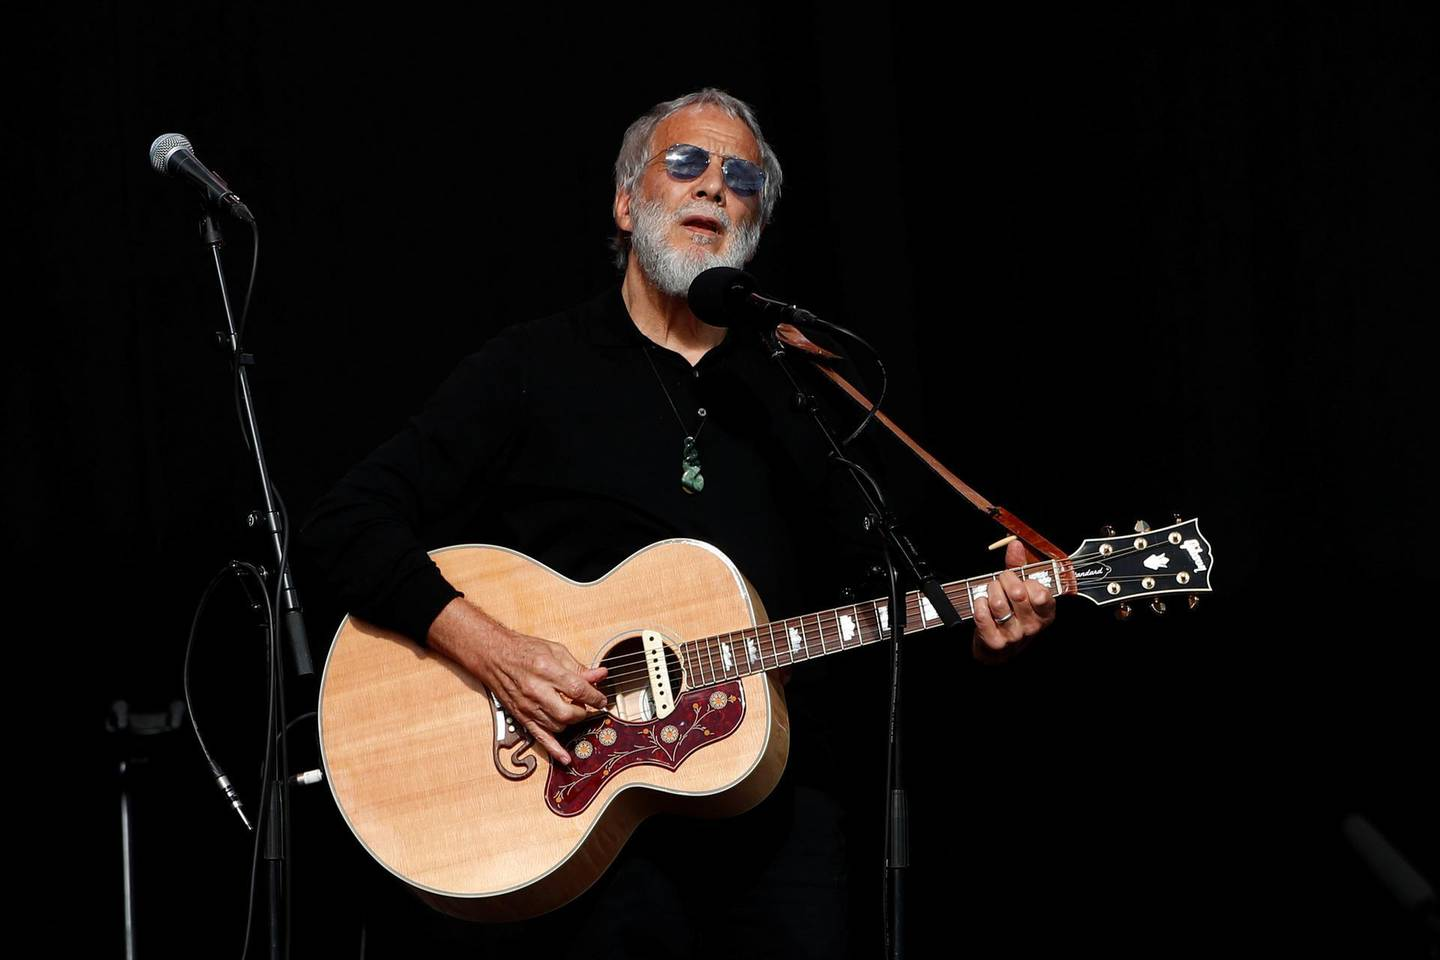 Yusof Islam, formerly known as Cat Stevens, performs at the national remembrance service for victims of the mosque attacks, at Hagley Park in Christchurch, New Zealand March 29, 2019. REUTERS/Edgar Su